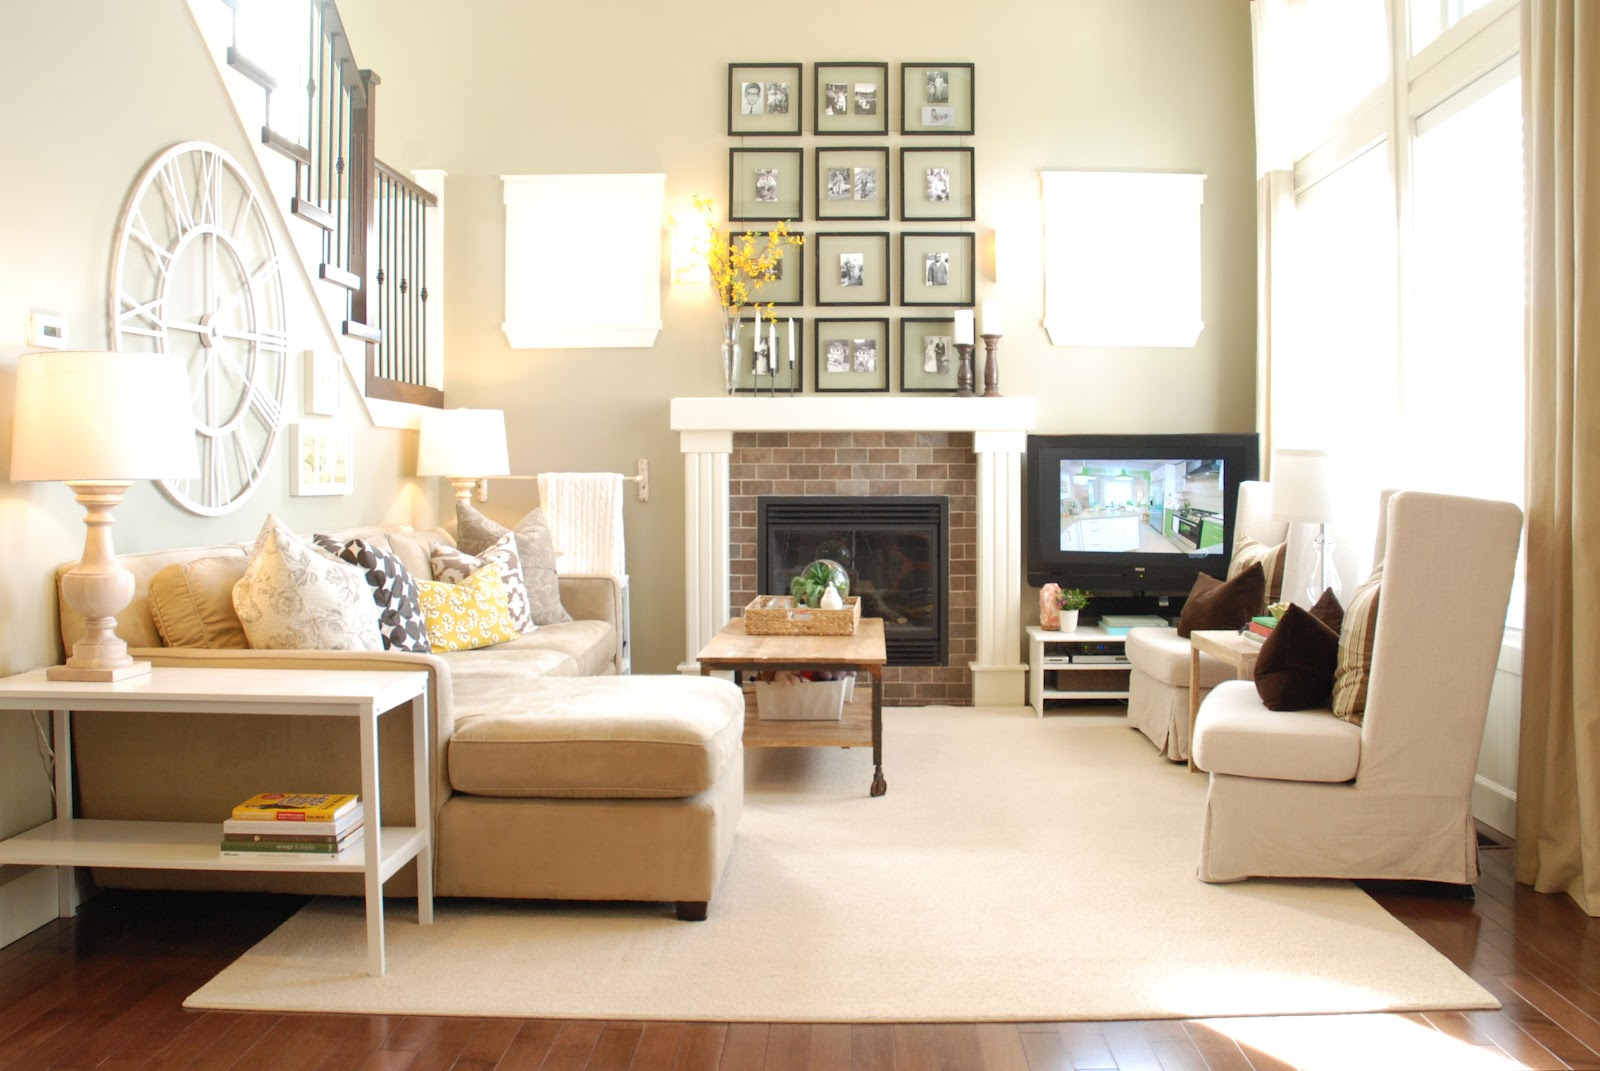 Outstanding Neutral Living Room with Fireplace 1600 x 1071 · 214 kB · jpeg